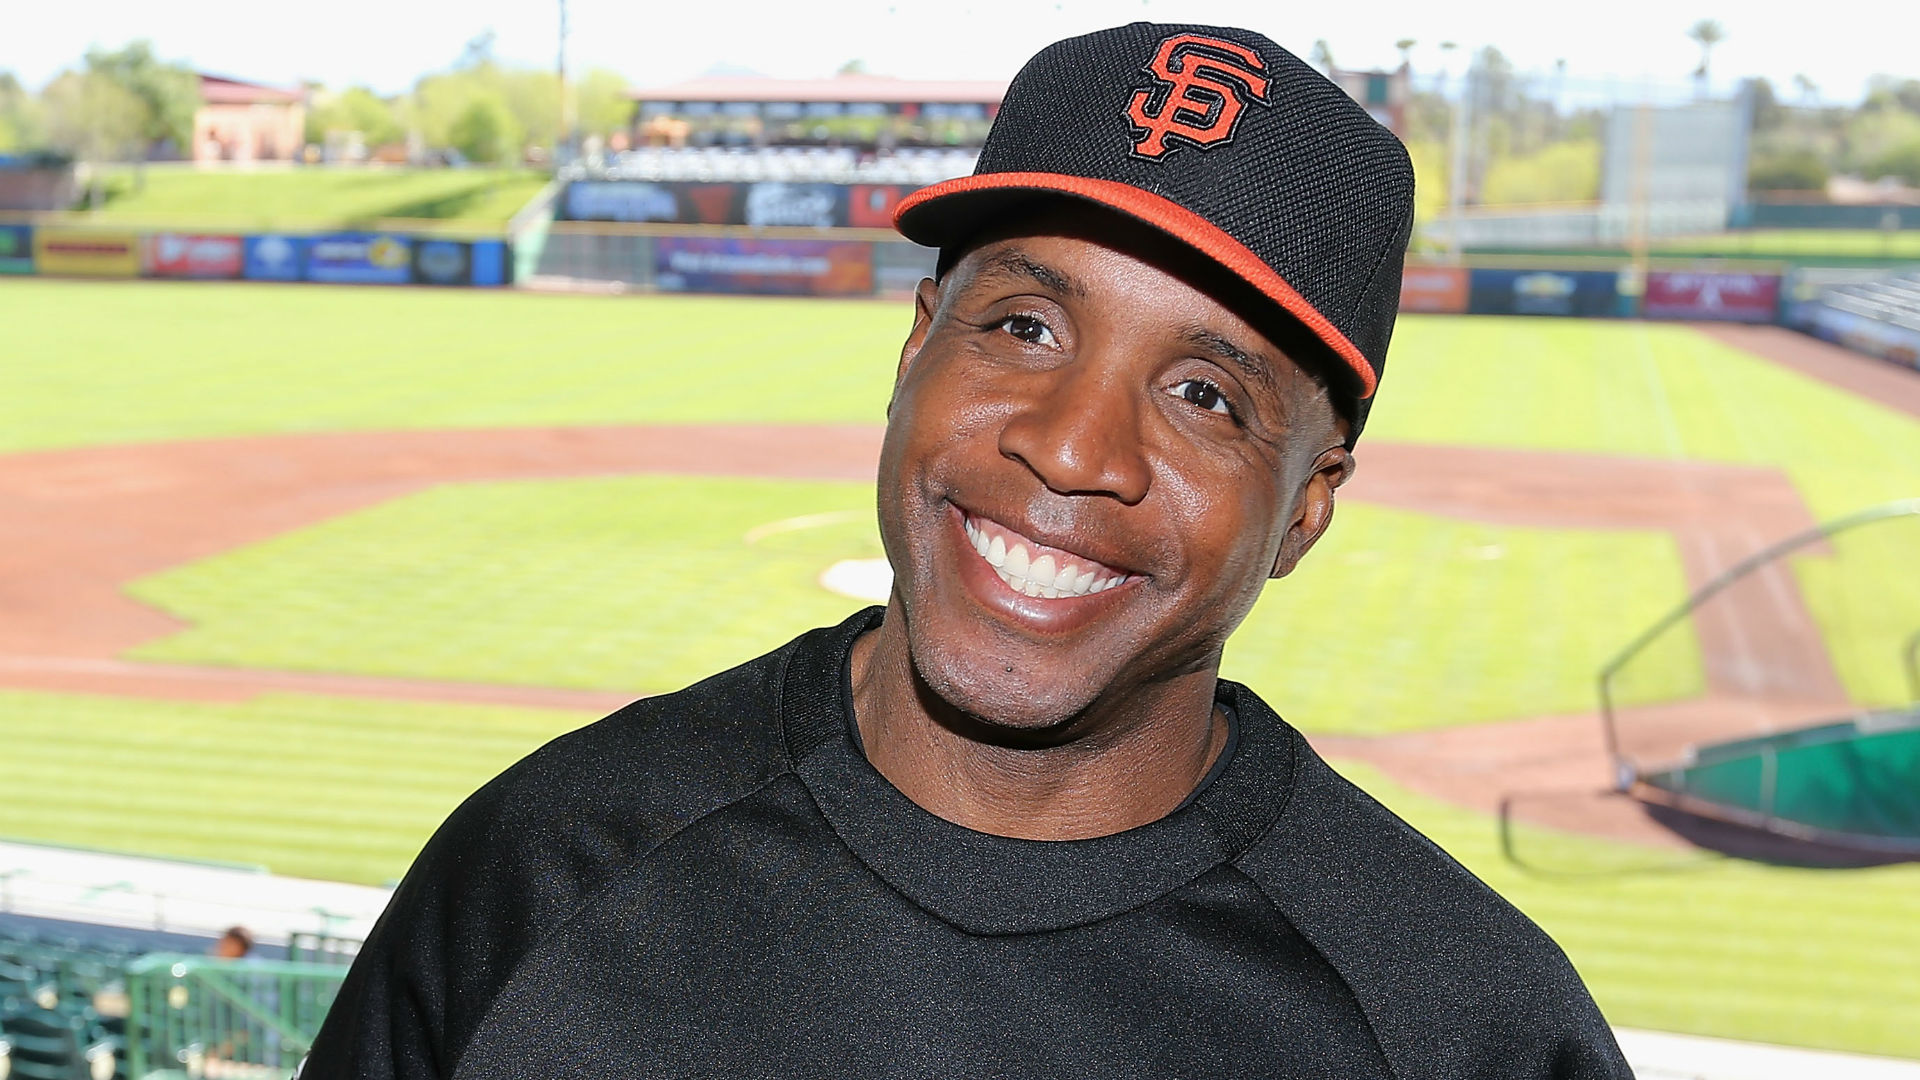 San Francisco Giants: Barry Bonds Back as Special Advisor to Larry Baer